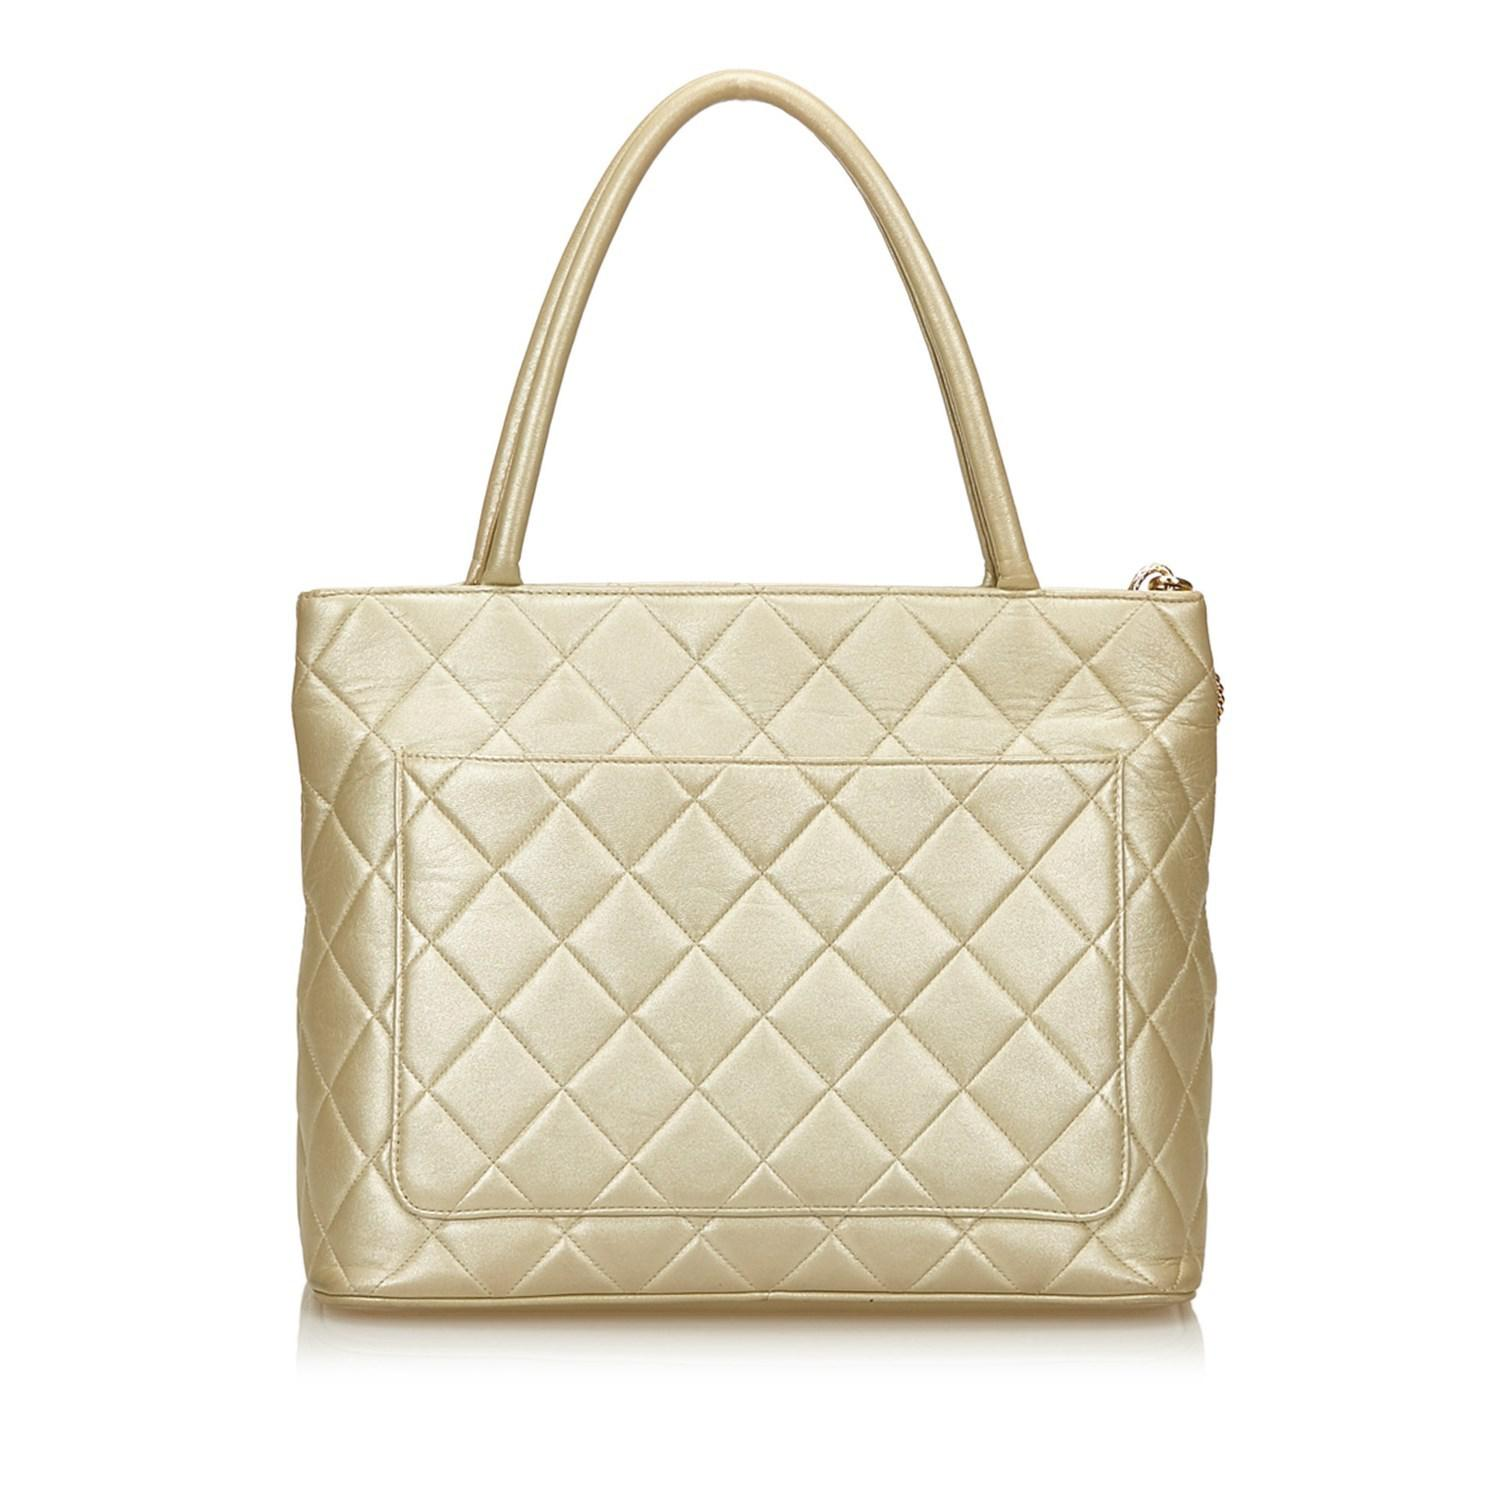 f6ccc23471b3 Lyst - Chanel Medallion Lambskin Tote in Metallic